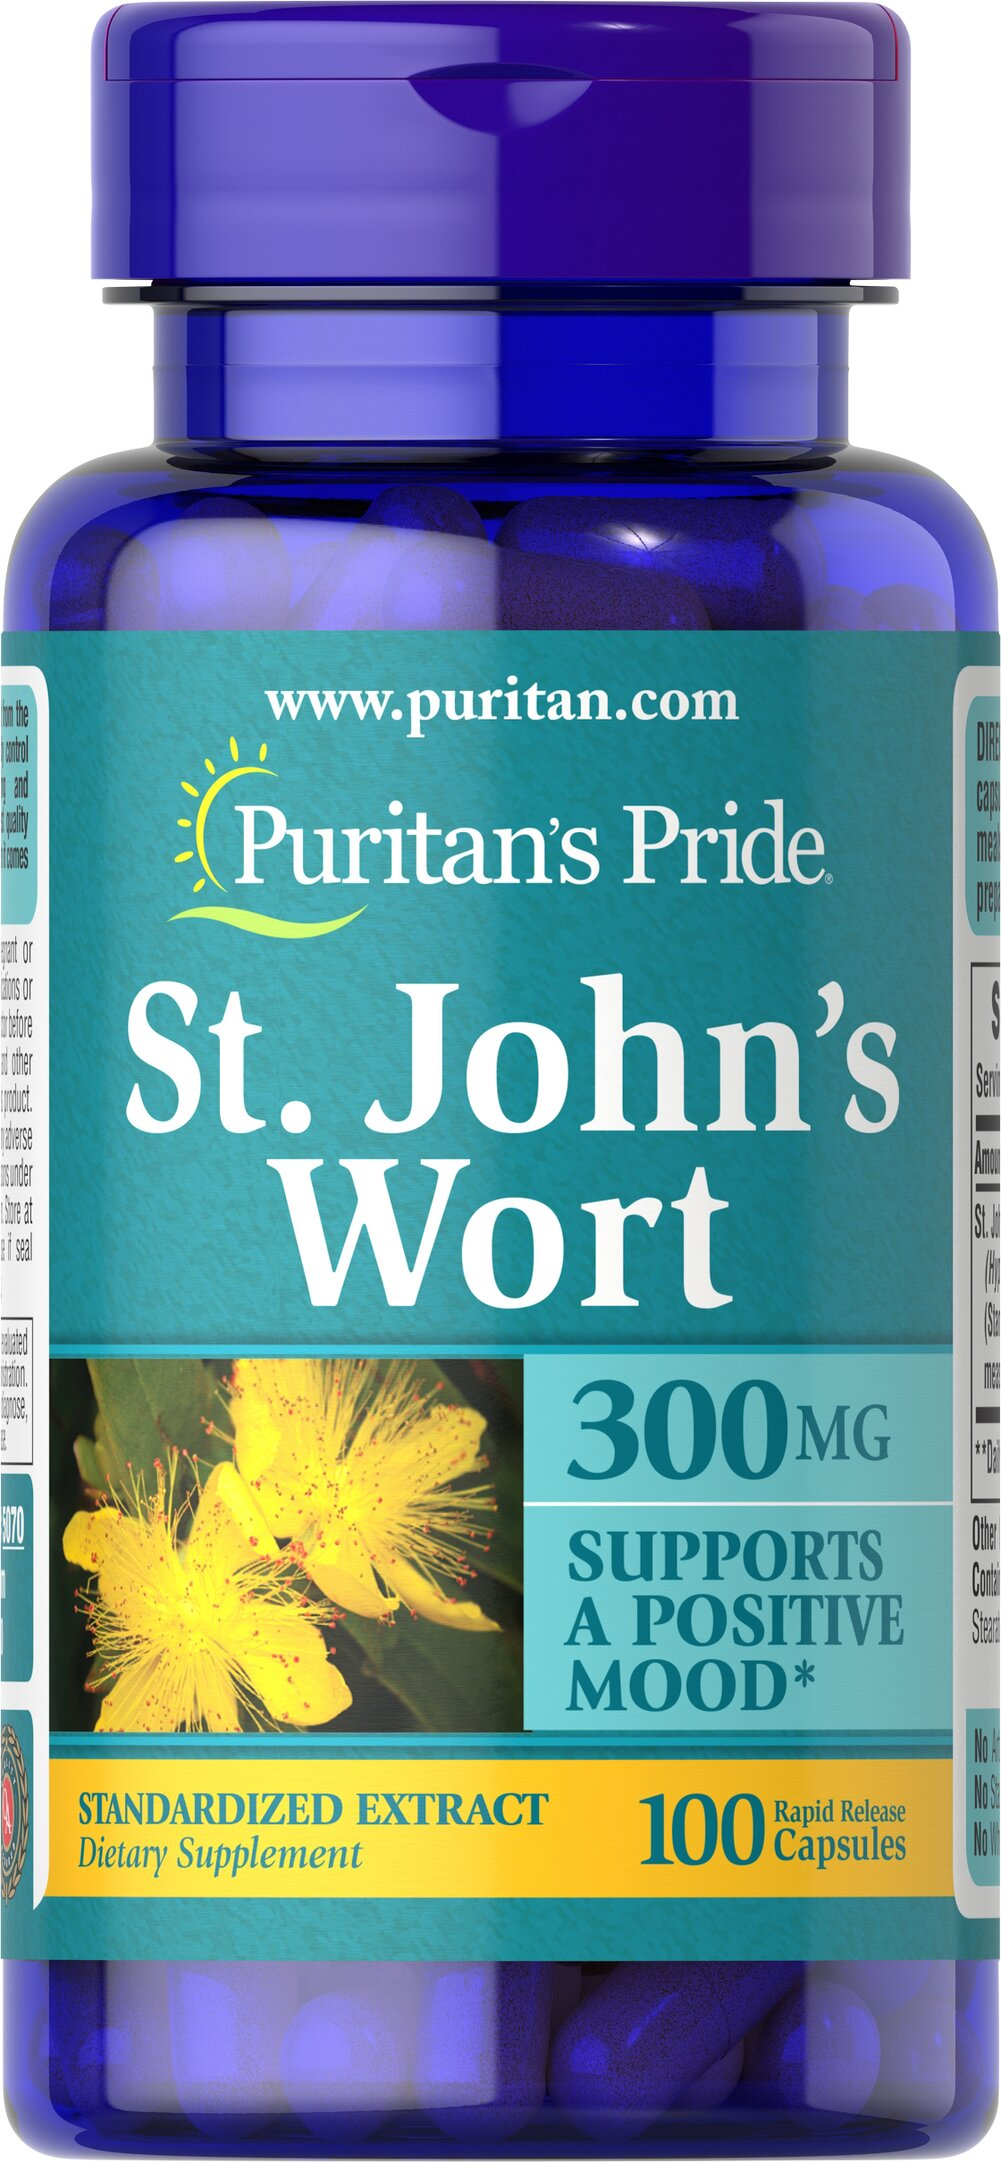 St. John's Wort Standardized Extract 300 mg <p>St. John's Wort has been used for centuries as a tonic and is clinically proven to promote mental well-being and peaceful mood.** At 900 milligrams per day, St. John's Wort can help maintain a positive mood and is perfect for anyone experiencing occasional anxiety and everyday stress.**</p> 100 Capsules 300 mg $12.44